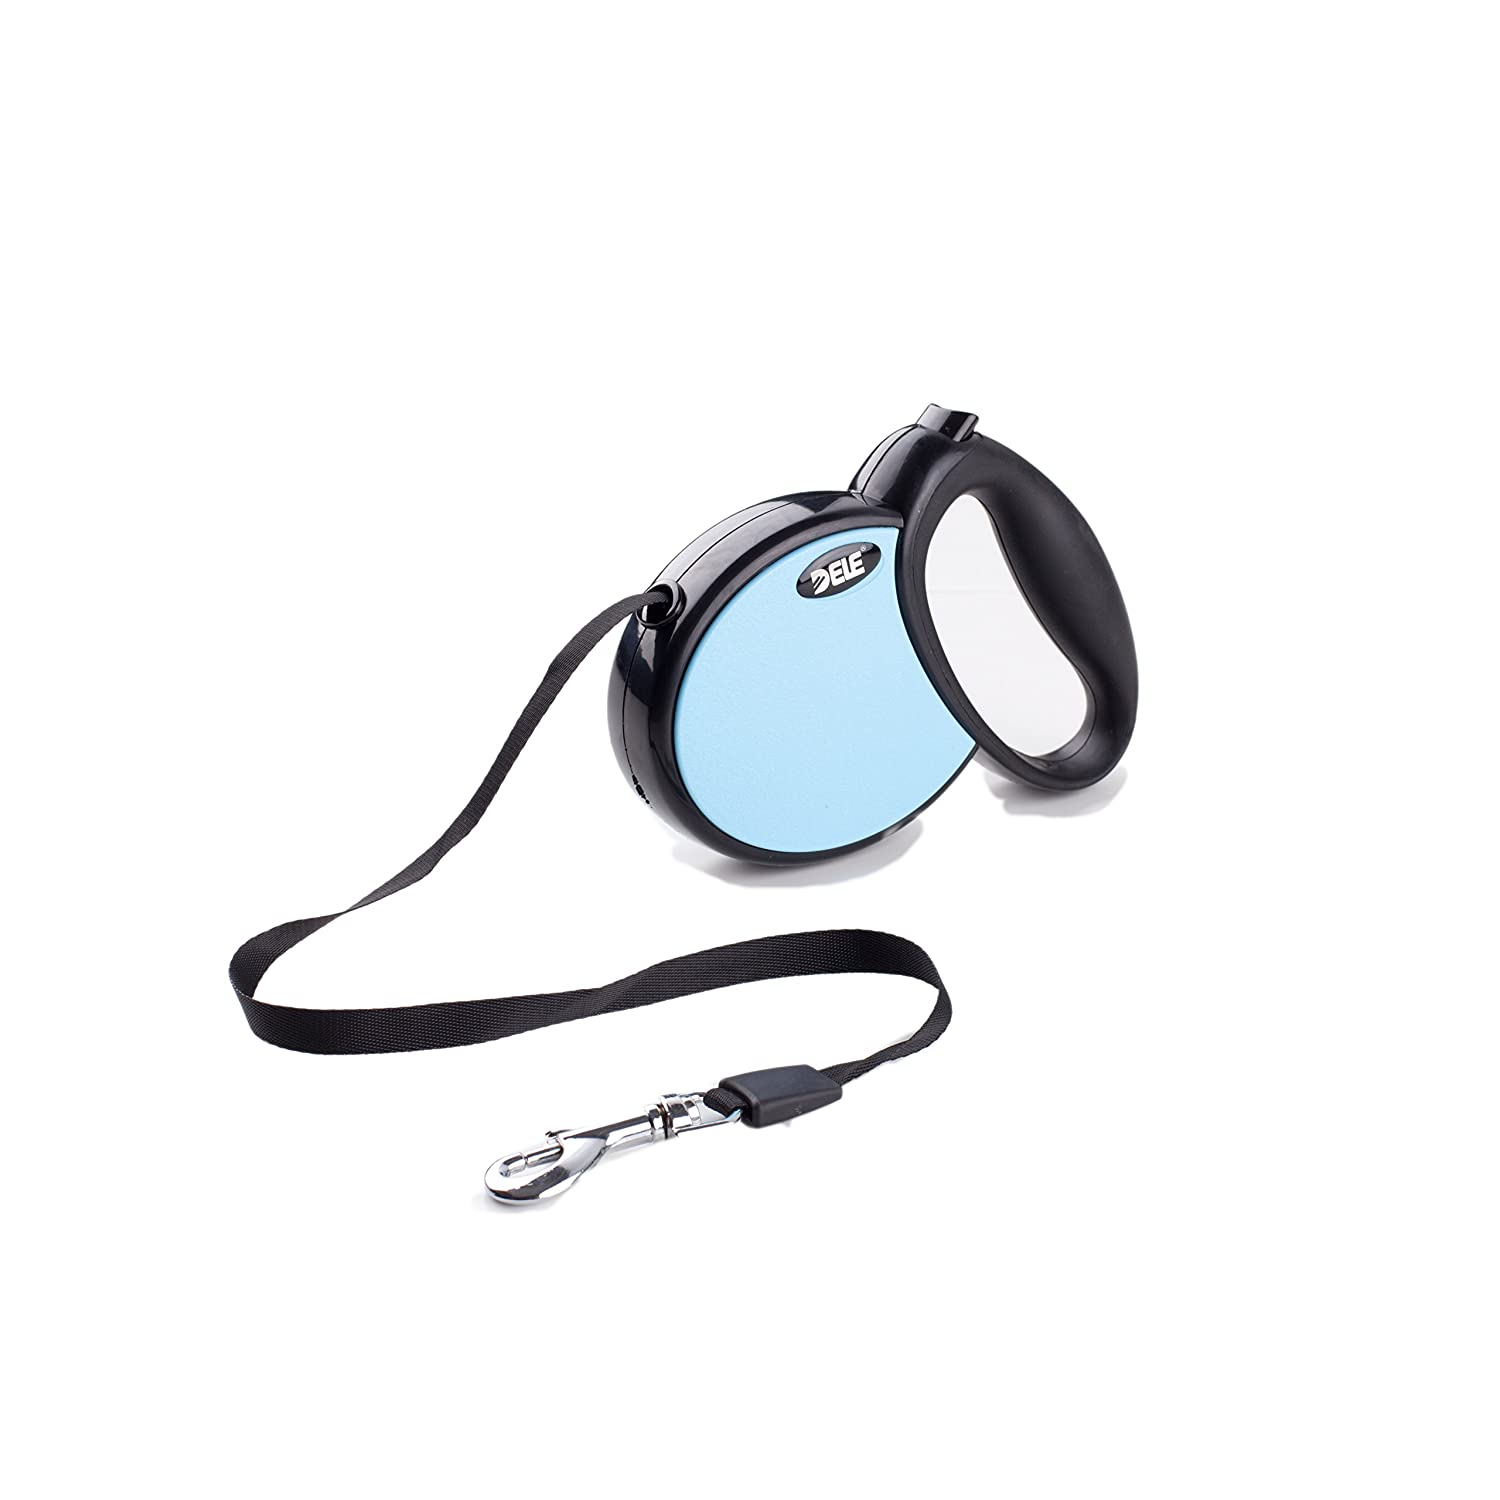 DELE Retractable Dog Leash, 13ft Dog Walking Leash Smooth Retracting Leash for Small Medium Breed up to 45lbs, Brake and Lock Button 20kg